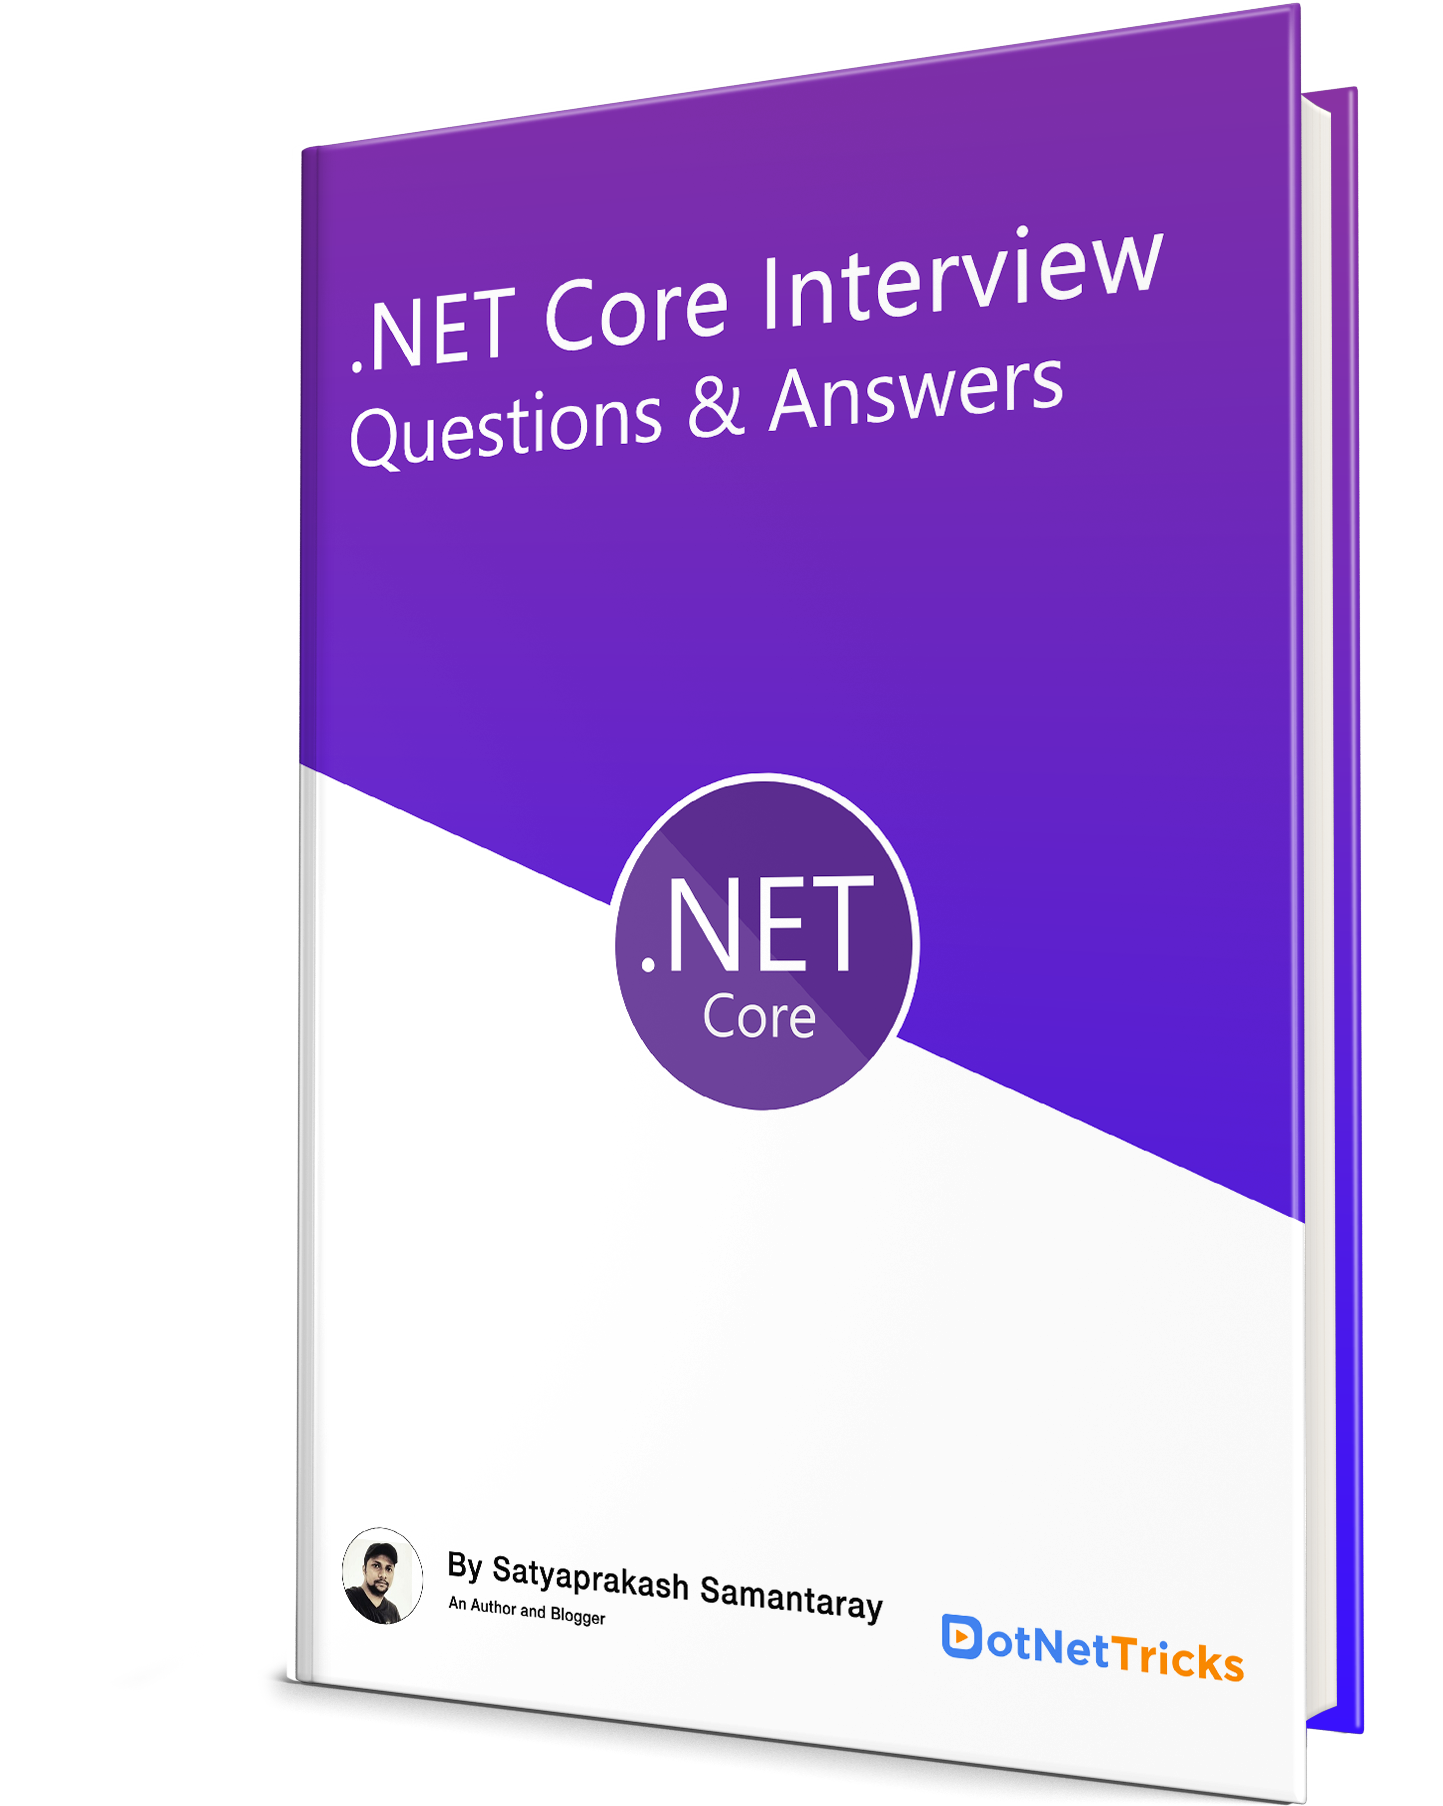 .NET Core Interview Questions and Answers Book